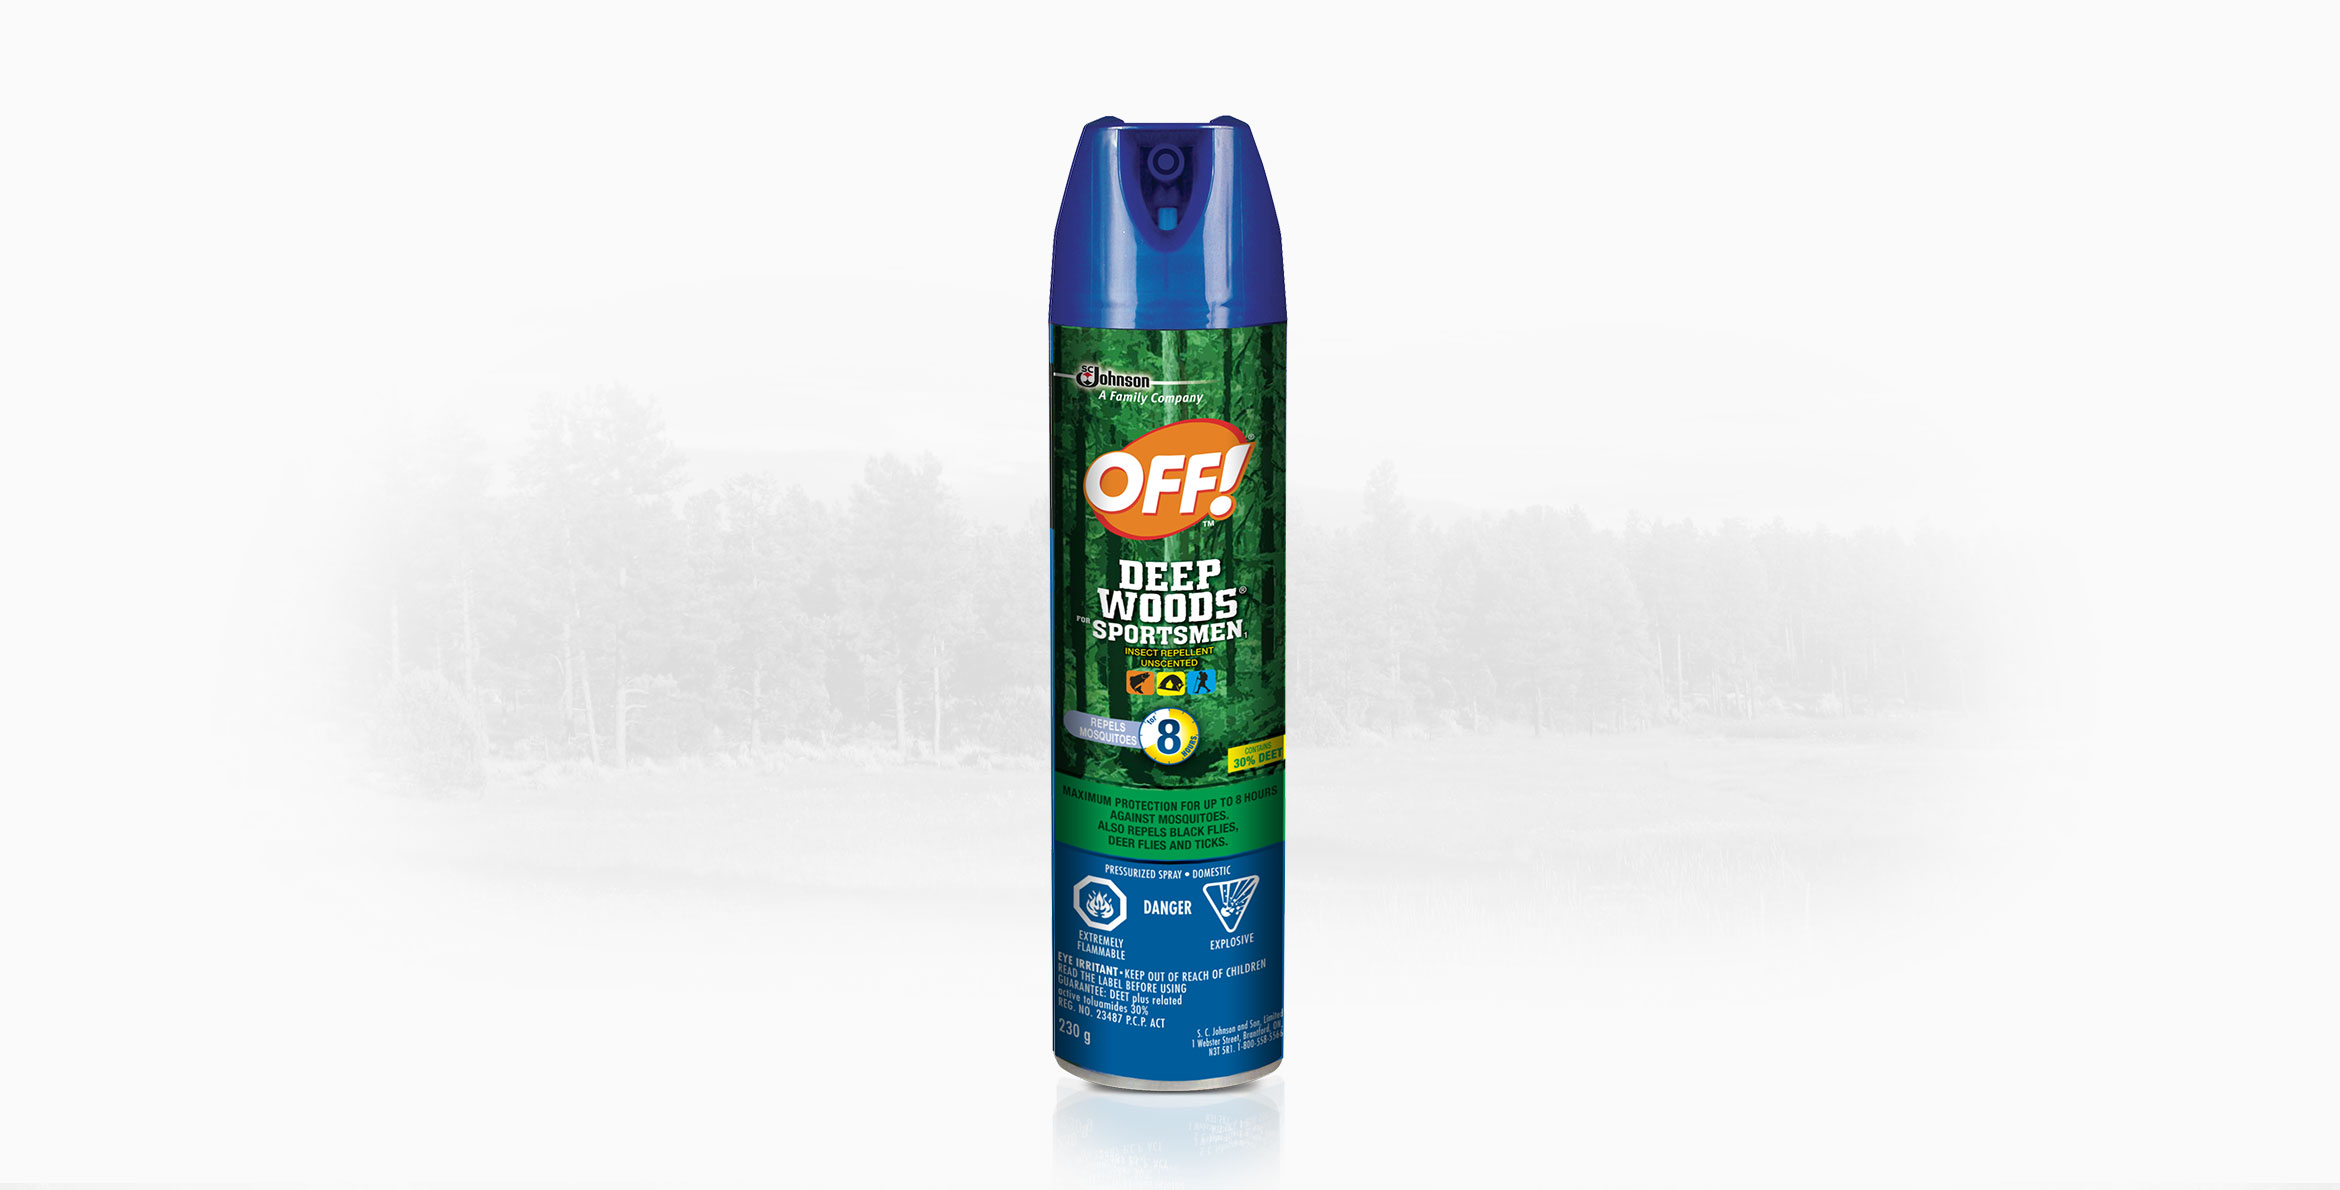 OFF!® Deep Woods® for Sportsmen Insect Repellent